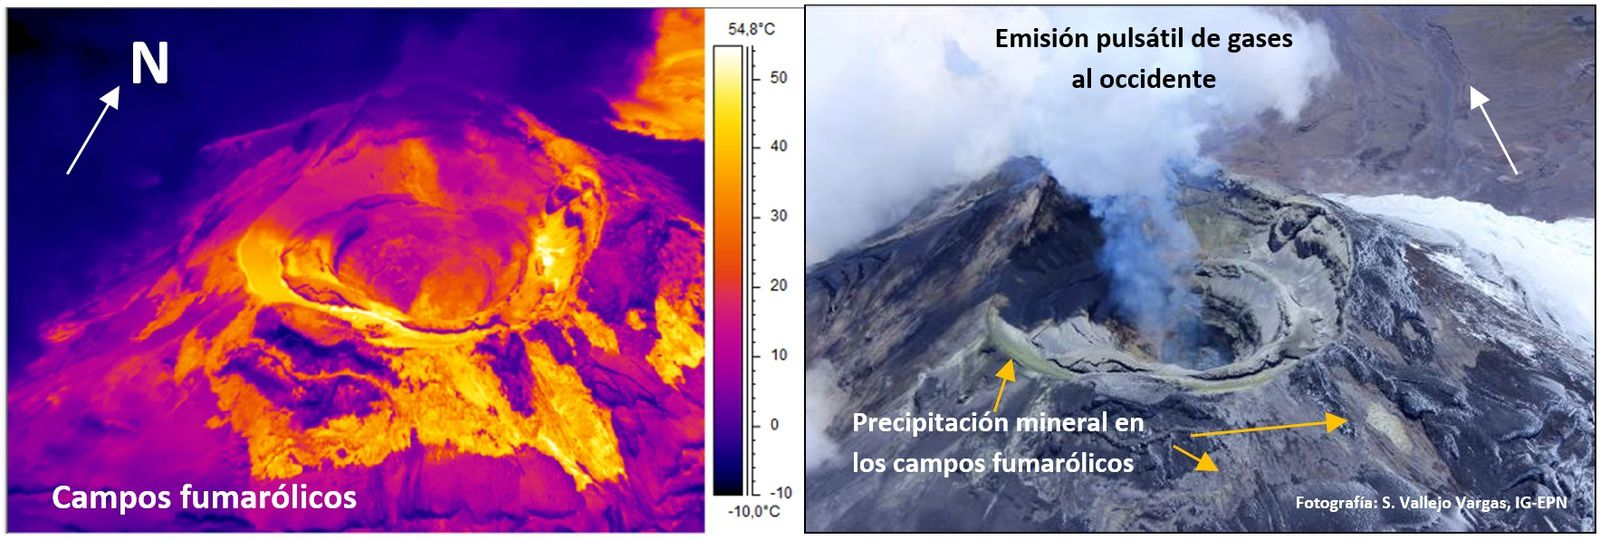 Cotopaxi - fumeroliens fields and gas pulsatile emission - Photo: S. Vallejo / IGEPN